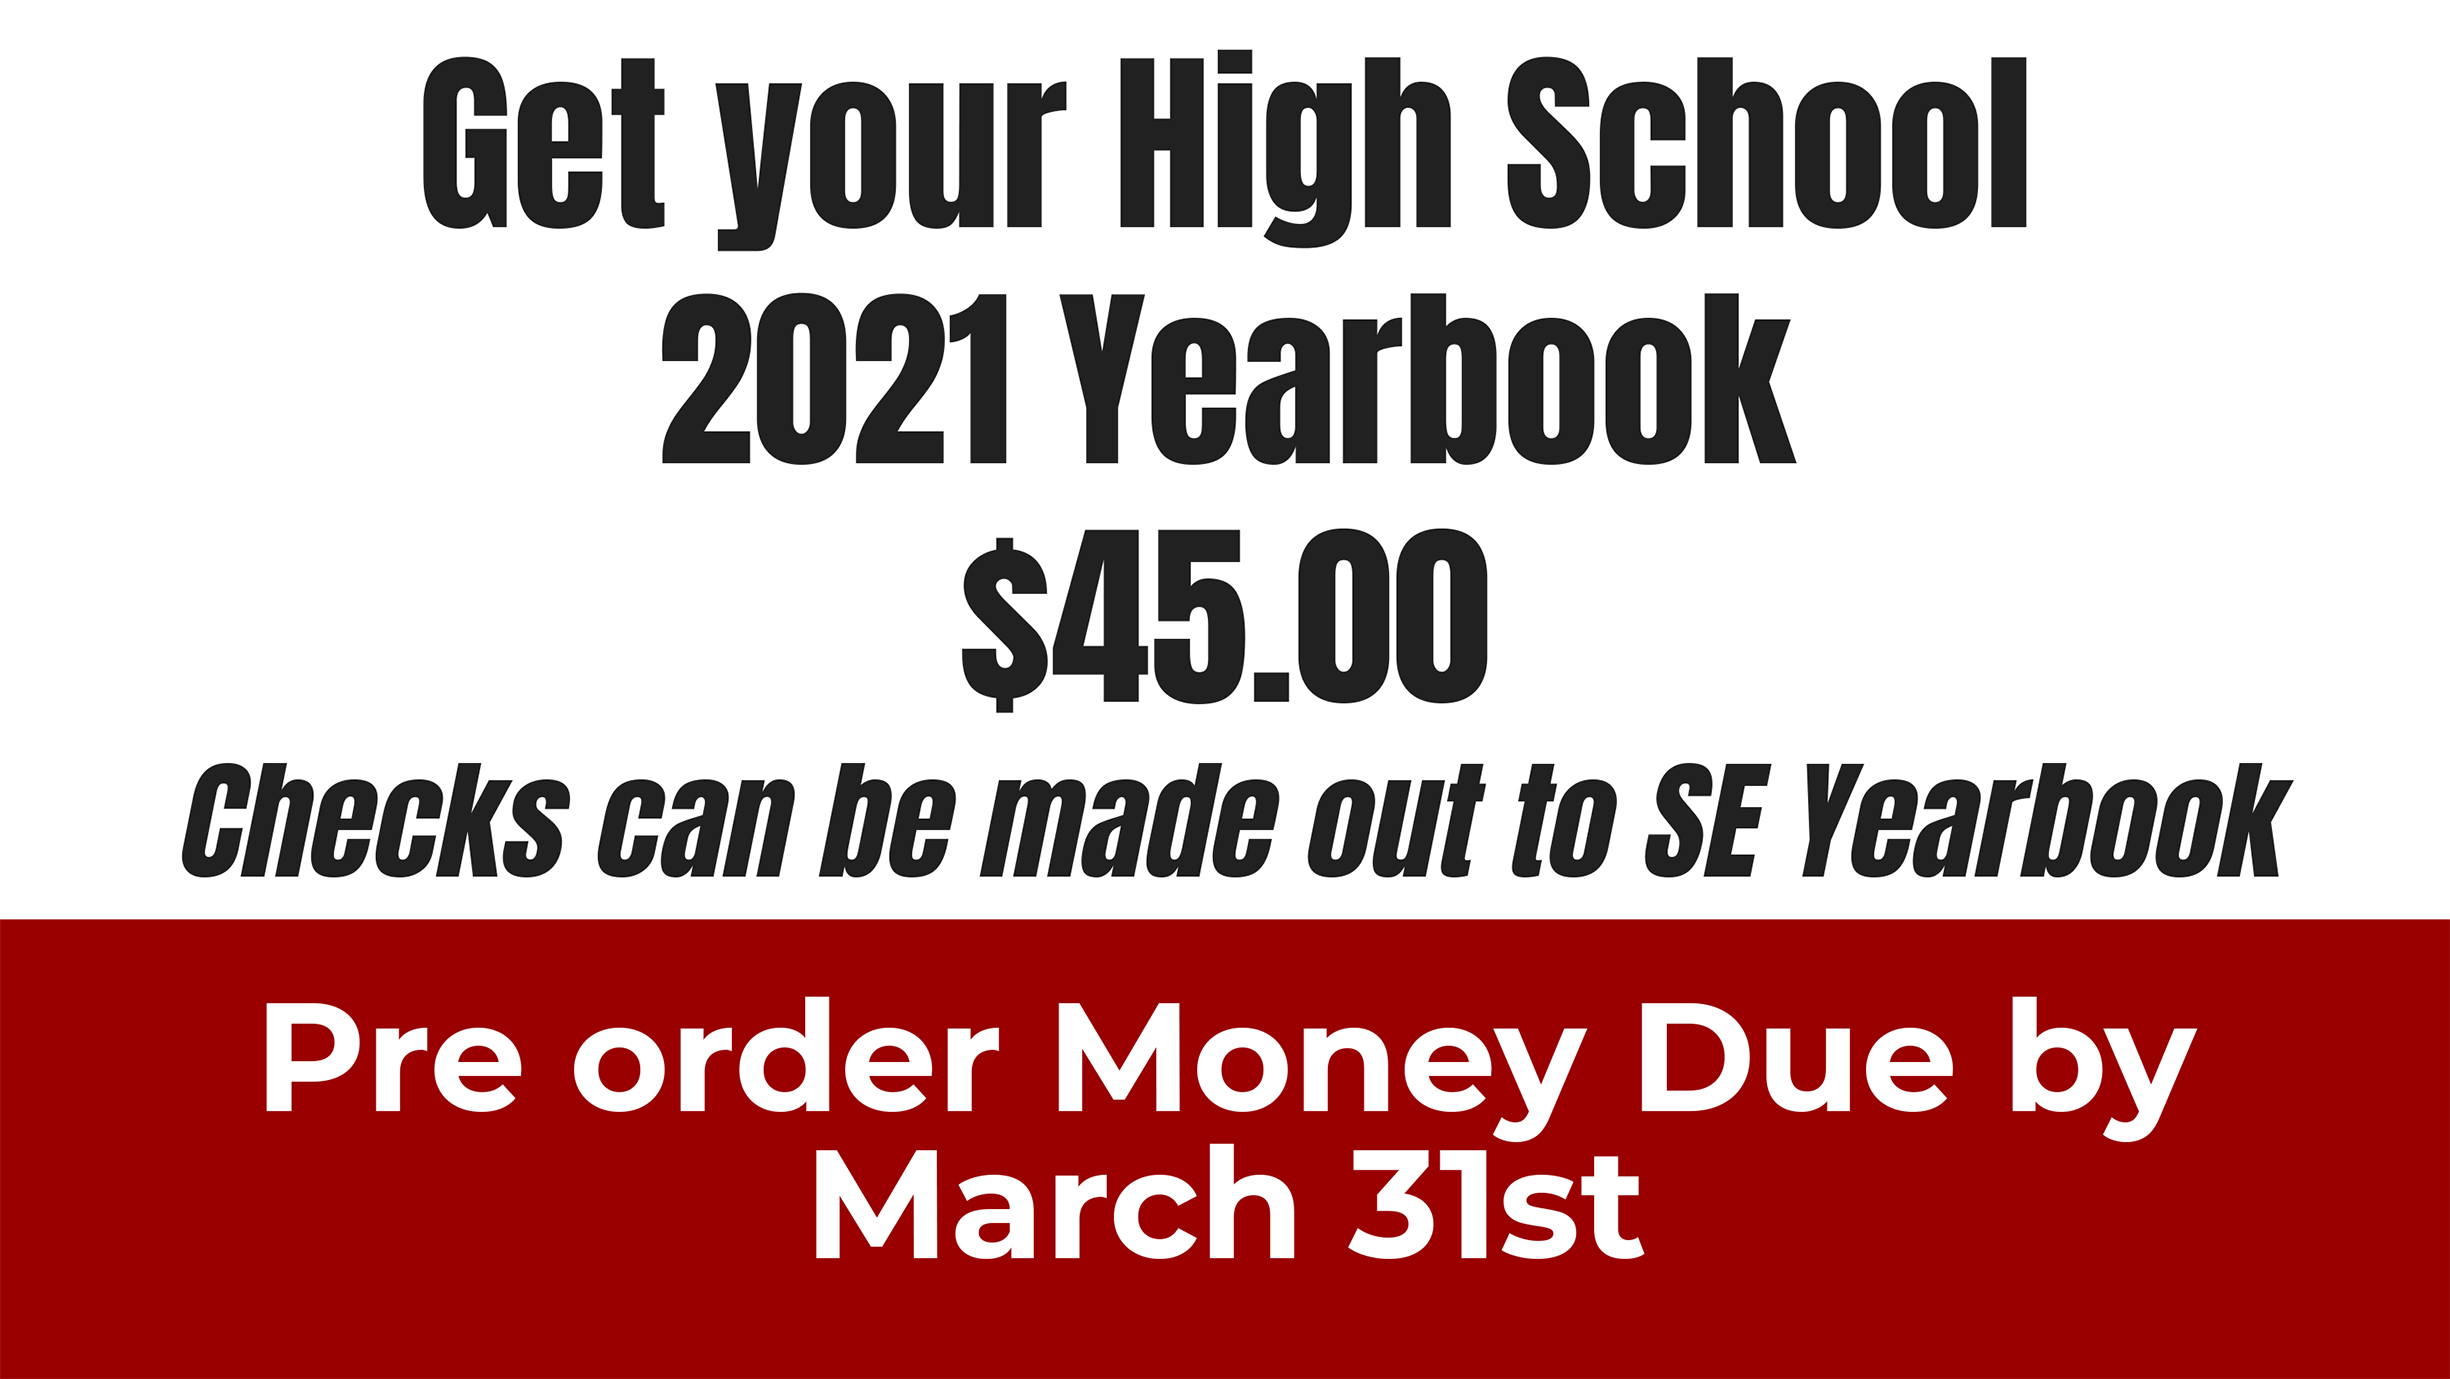 Yearbook ordering ad (2/2021)